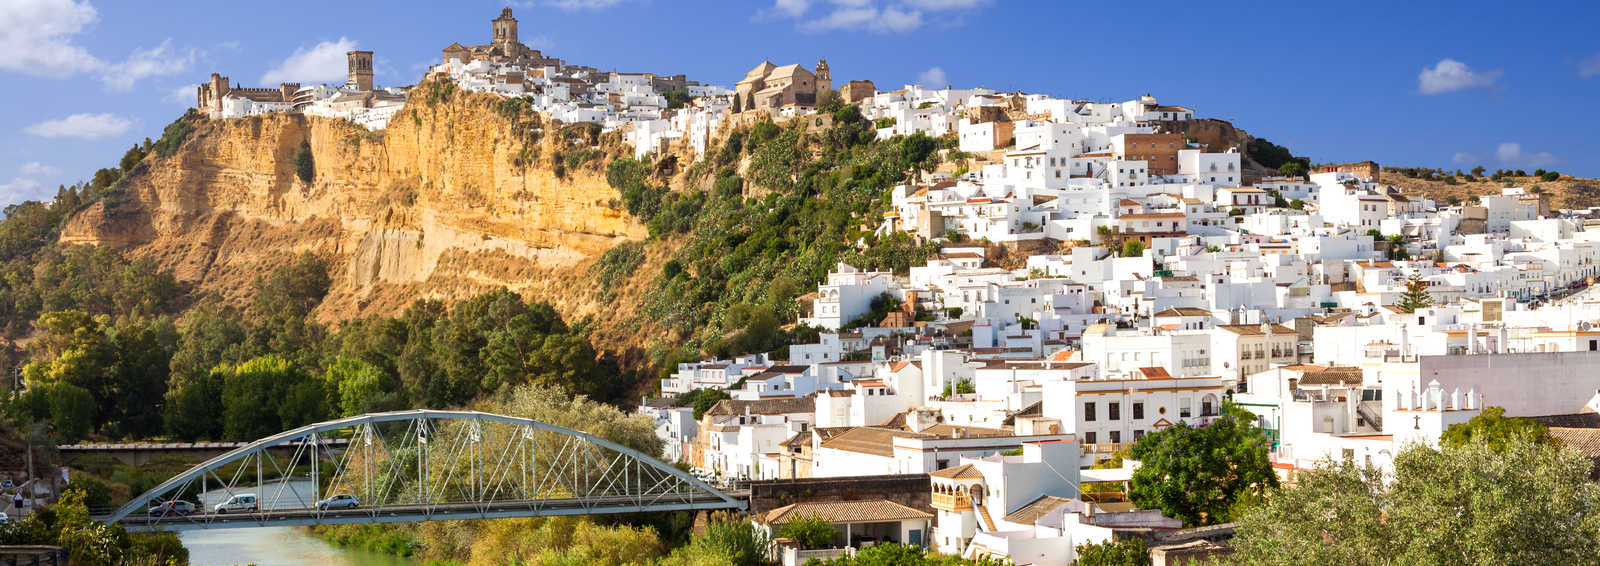 White town built on a rock along Guadalete river, in the province of Cadiz, Spain